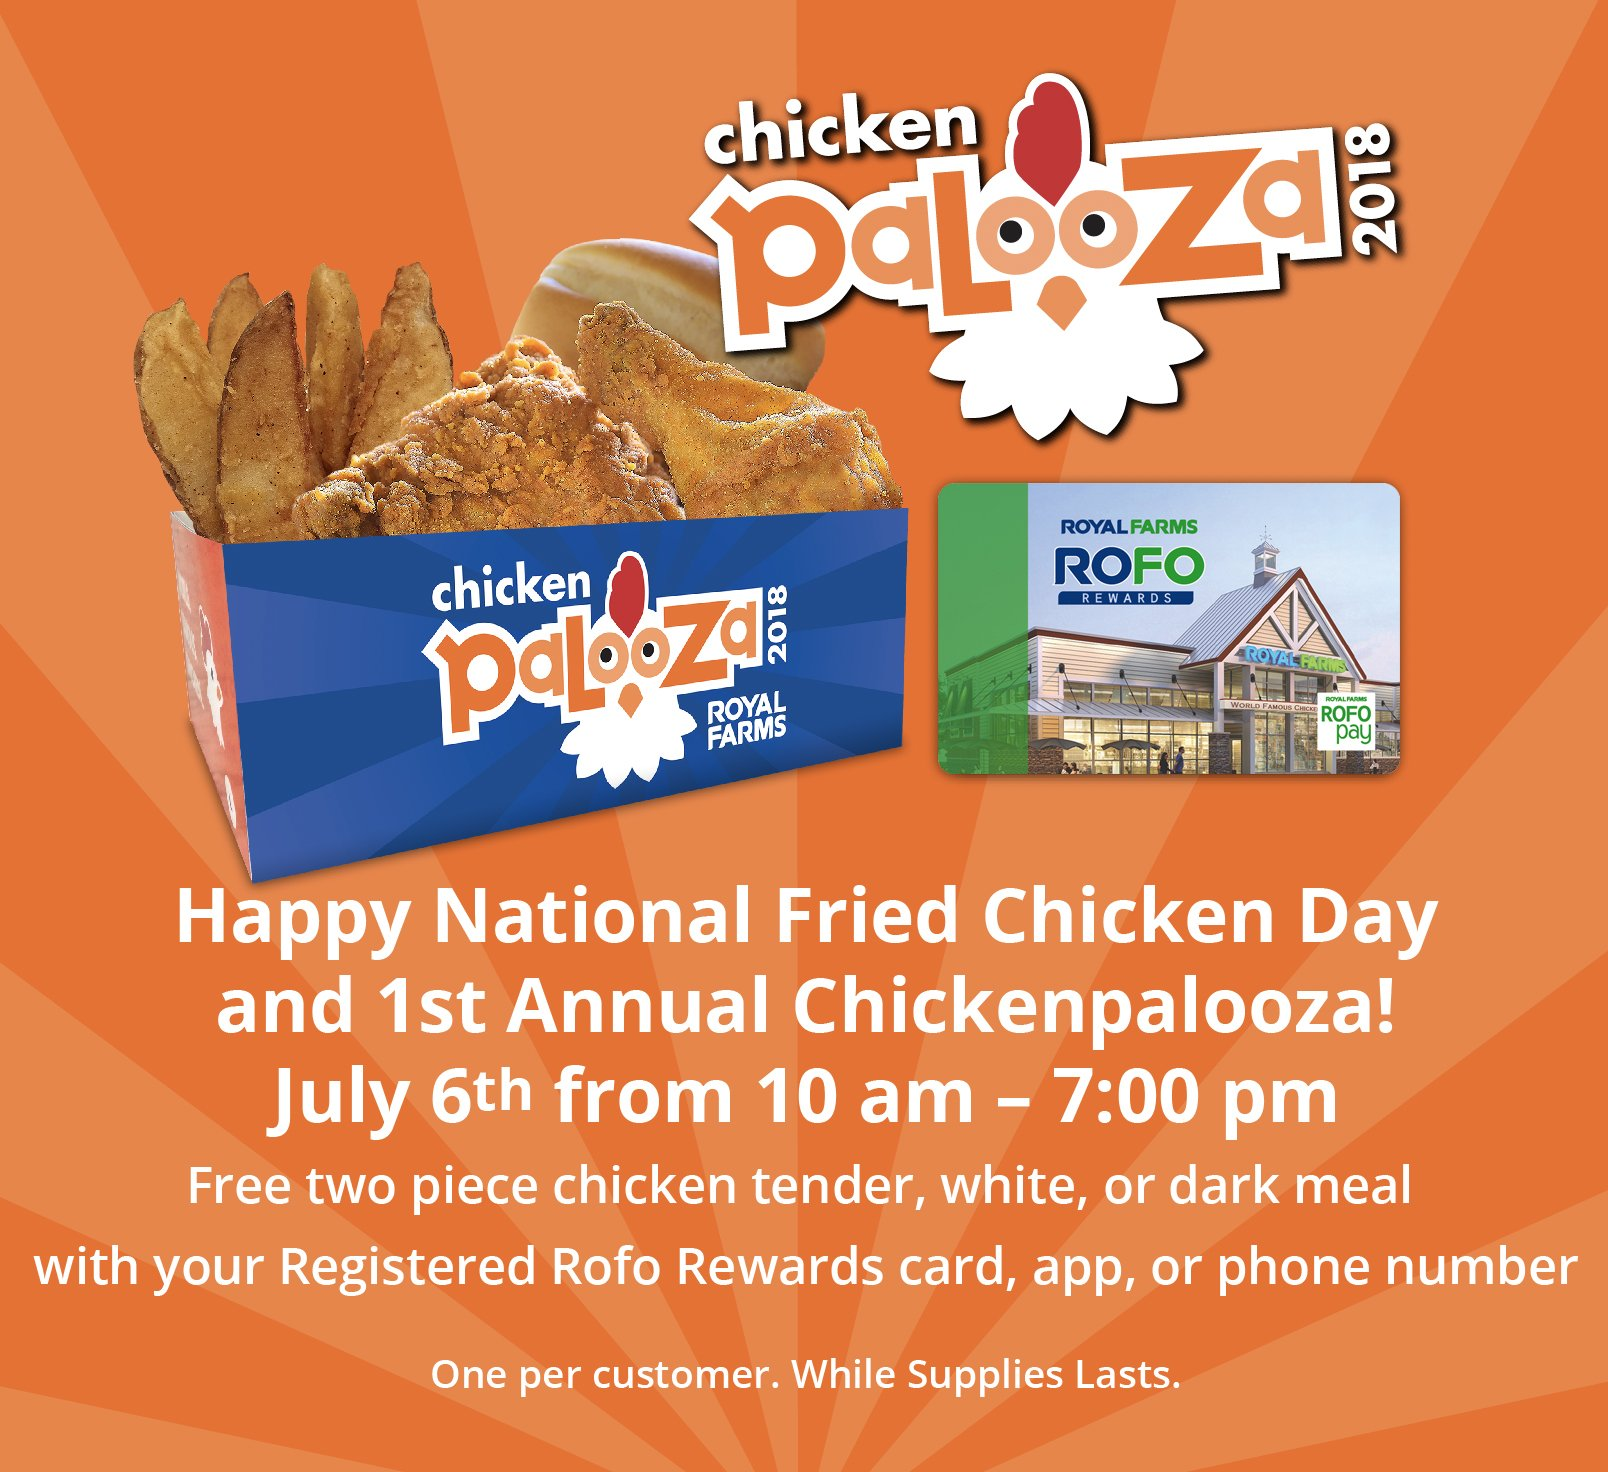 Royal Farms On Twitter Happy National Fried Chicken Day